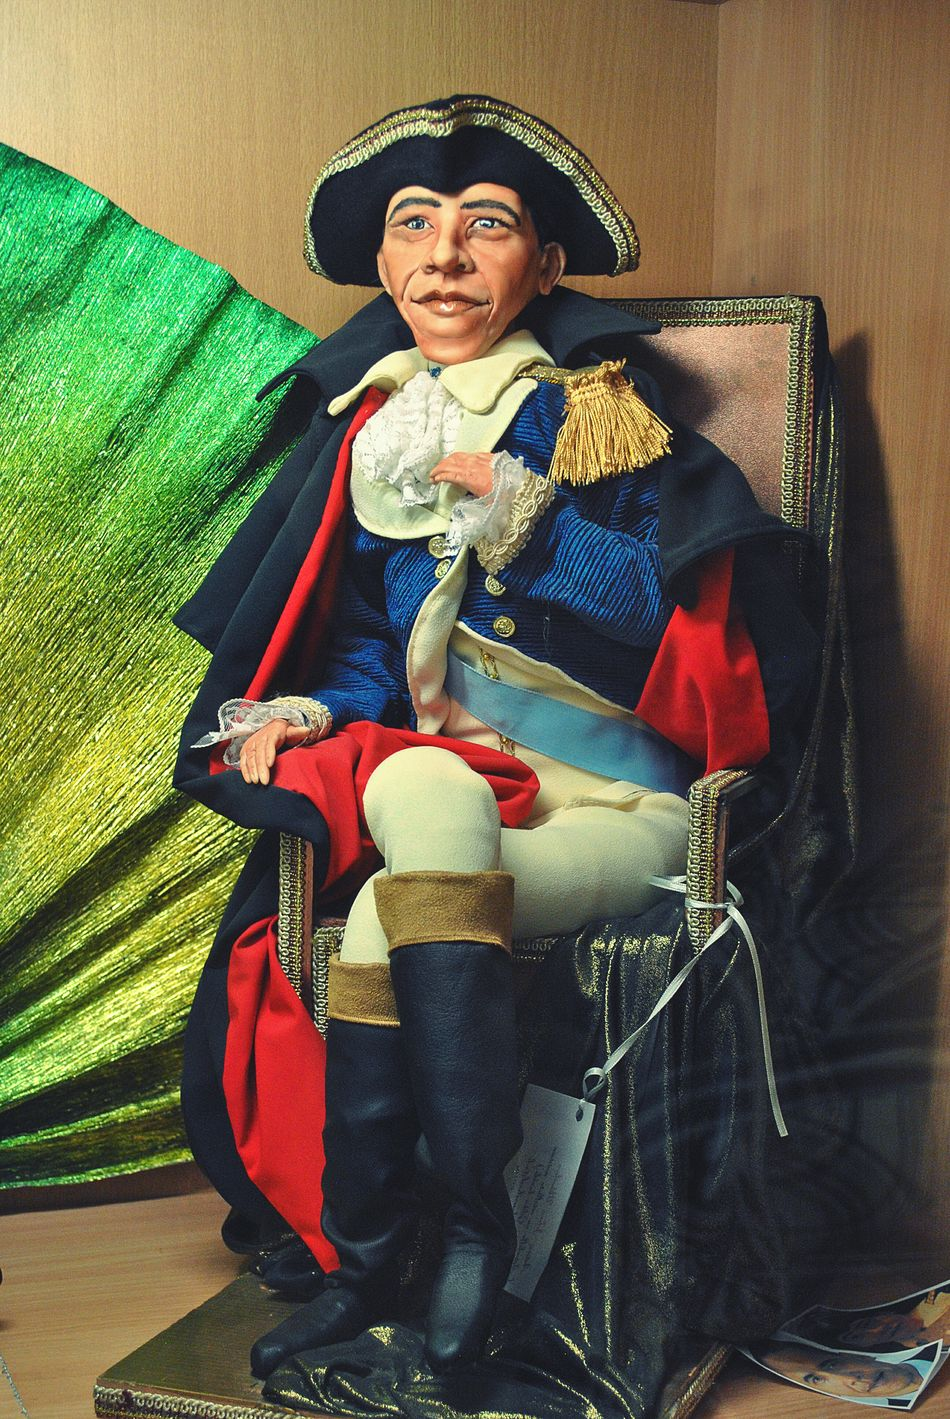 One Person Period Costume King - Royal Person Adult People Mature Adult President Obama Doll Puppet Indoors